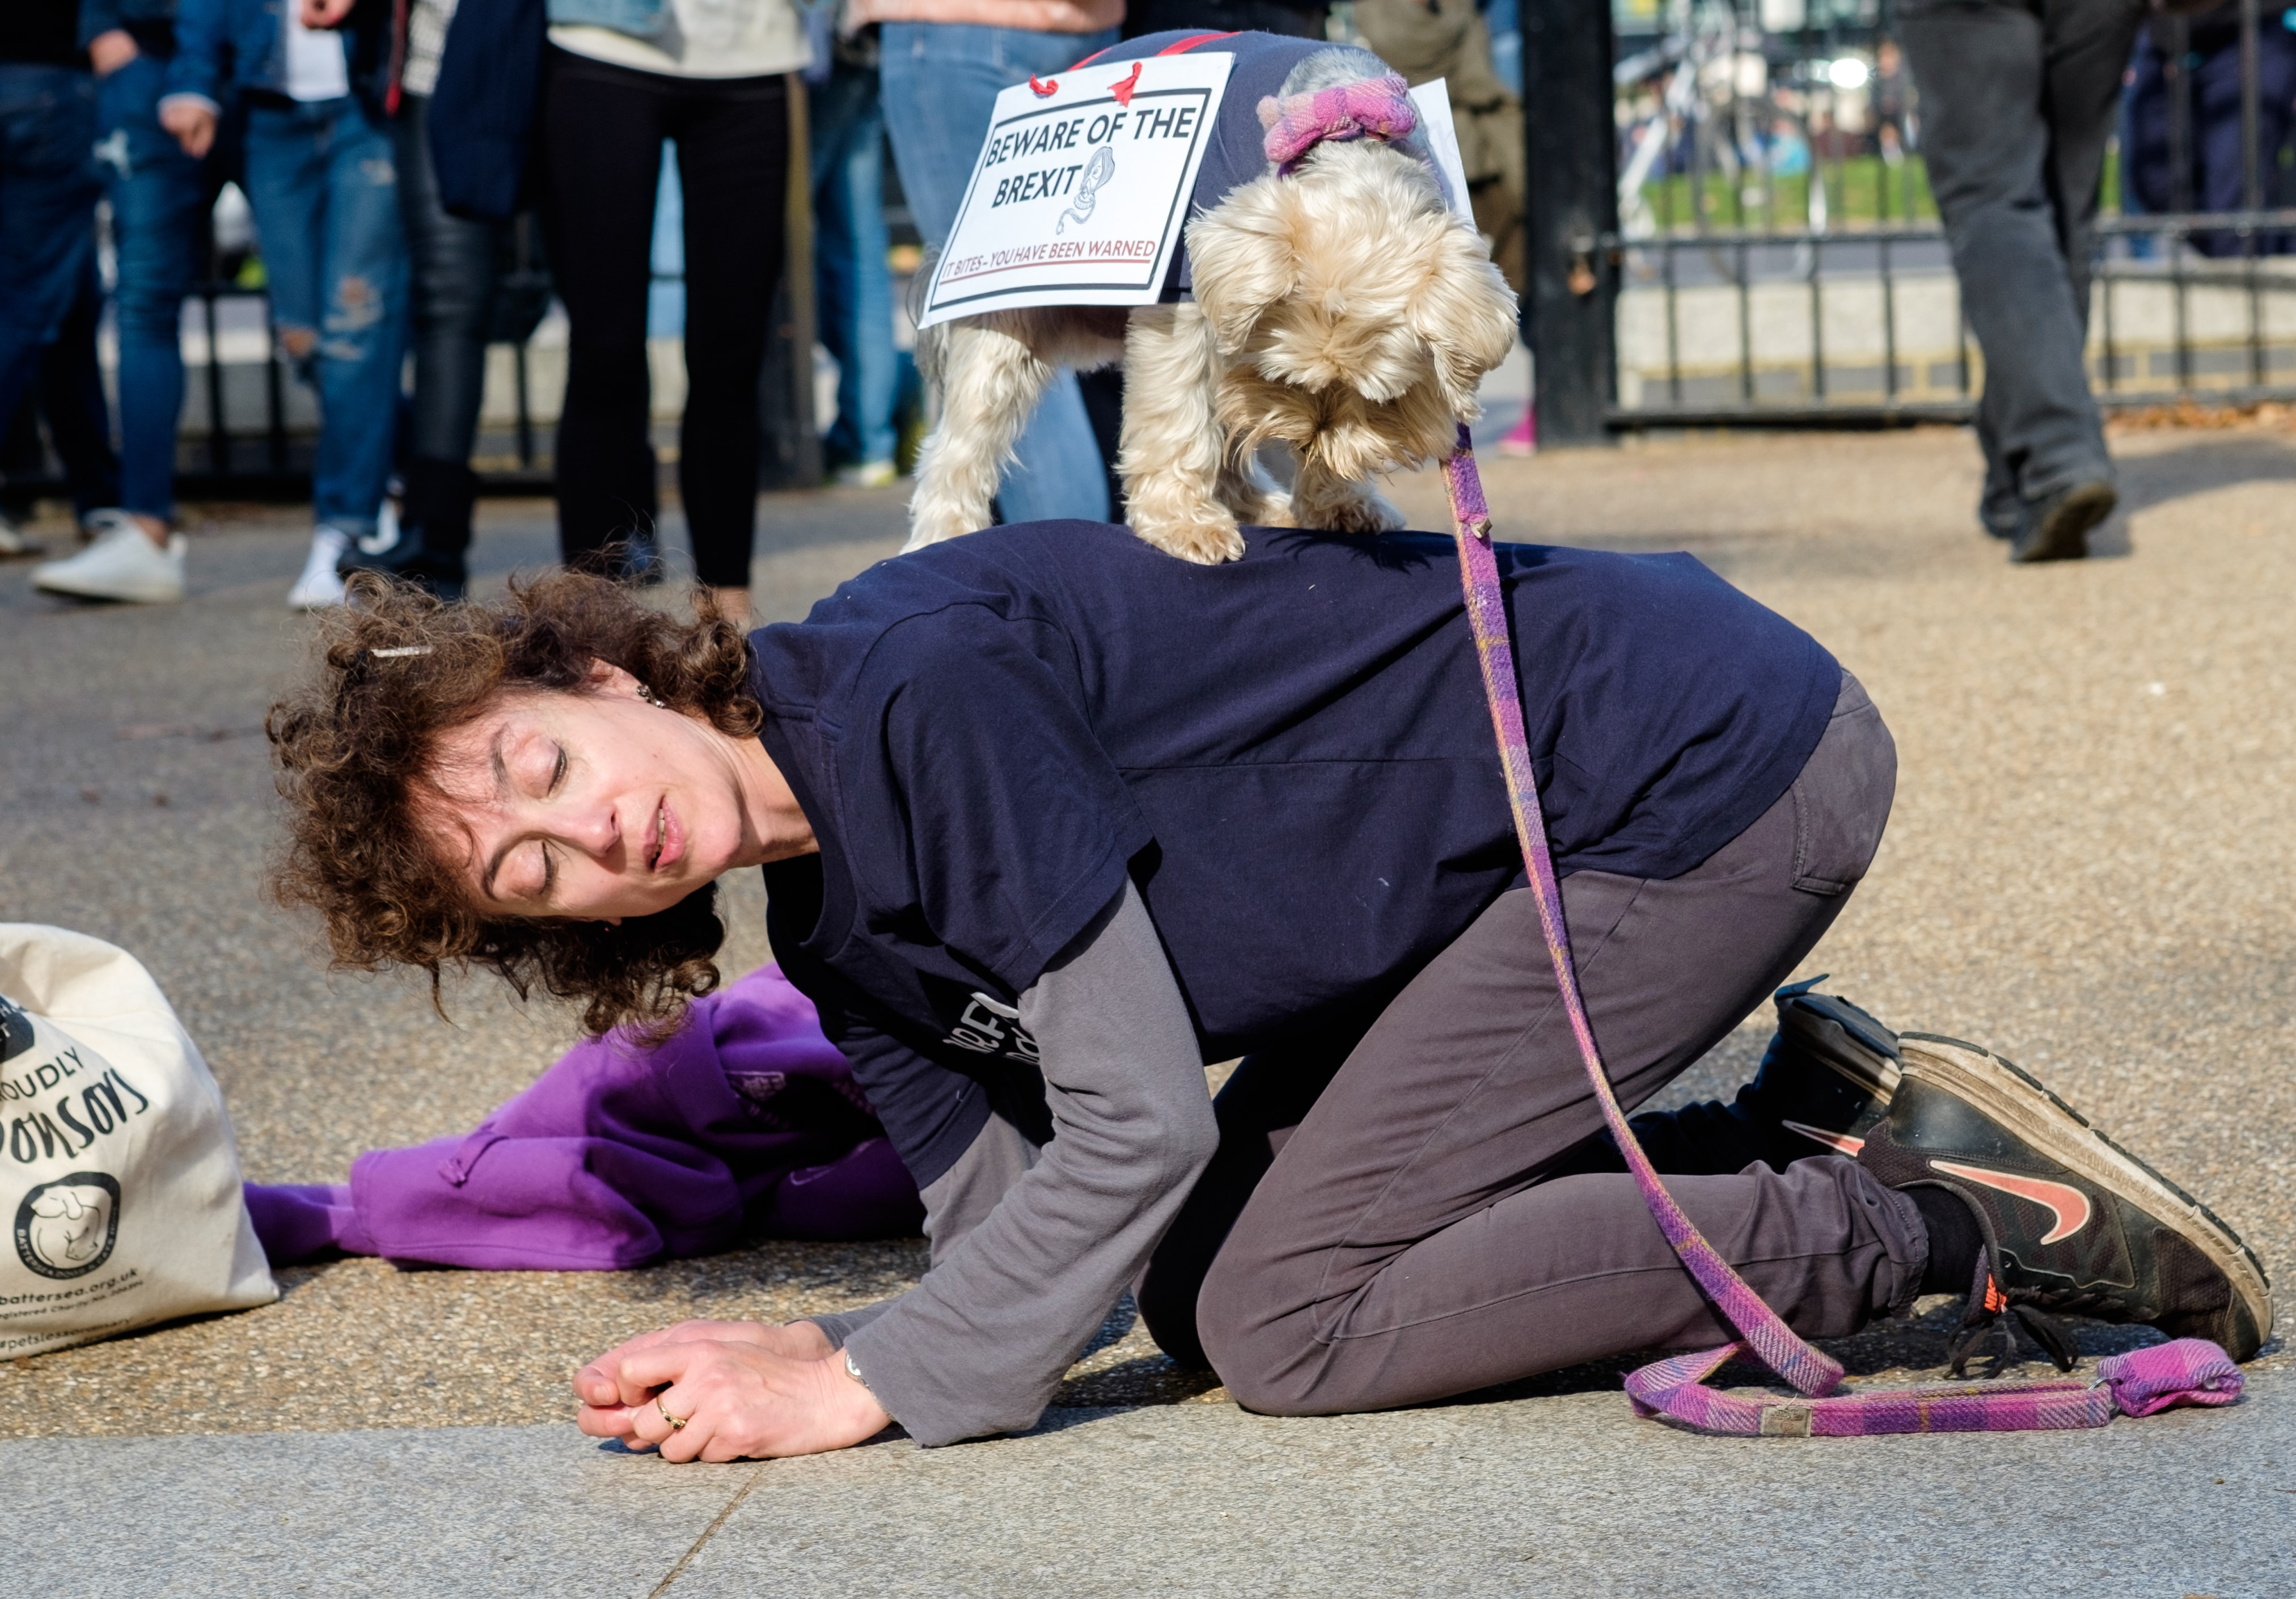 woman kneeling on cement surface with pet dog on her back